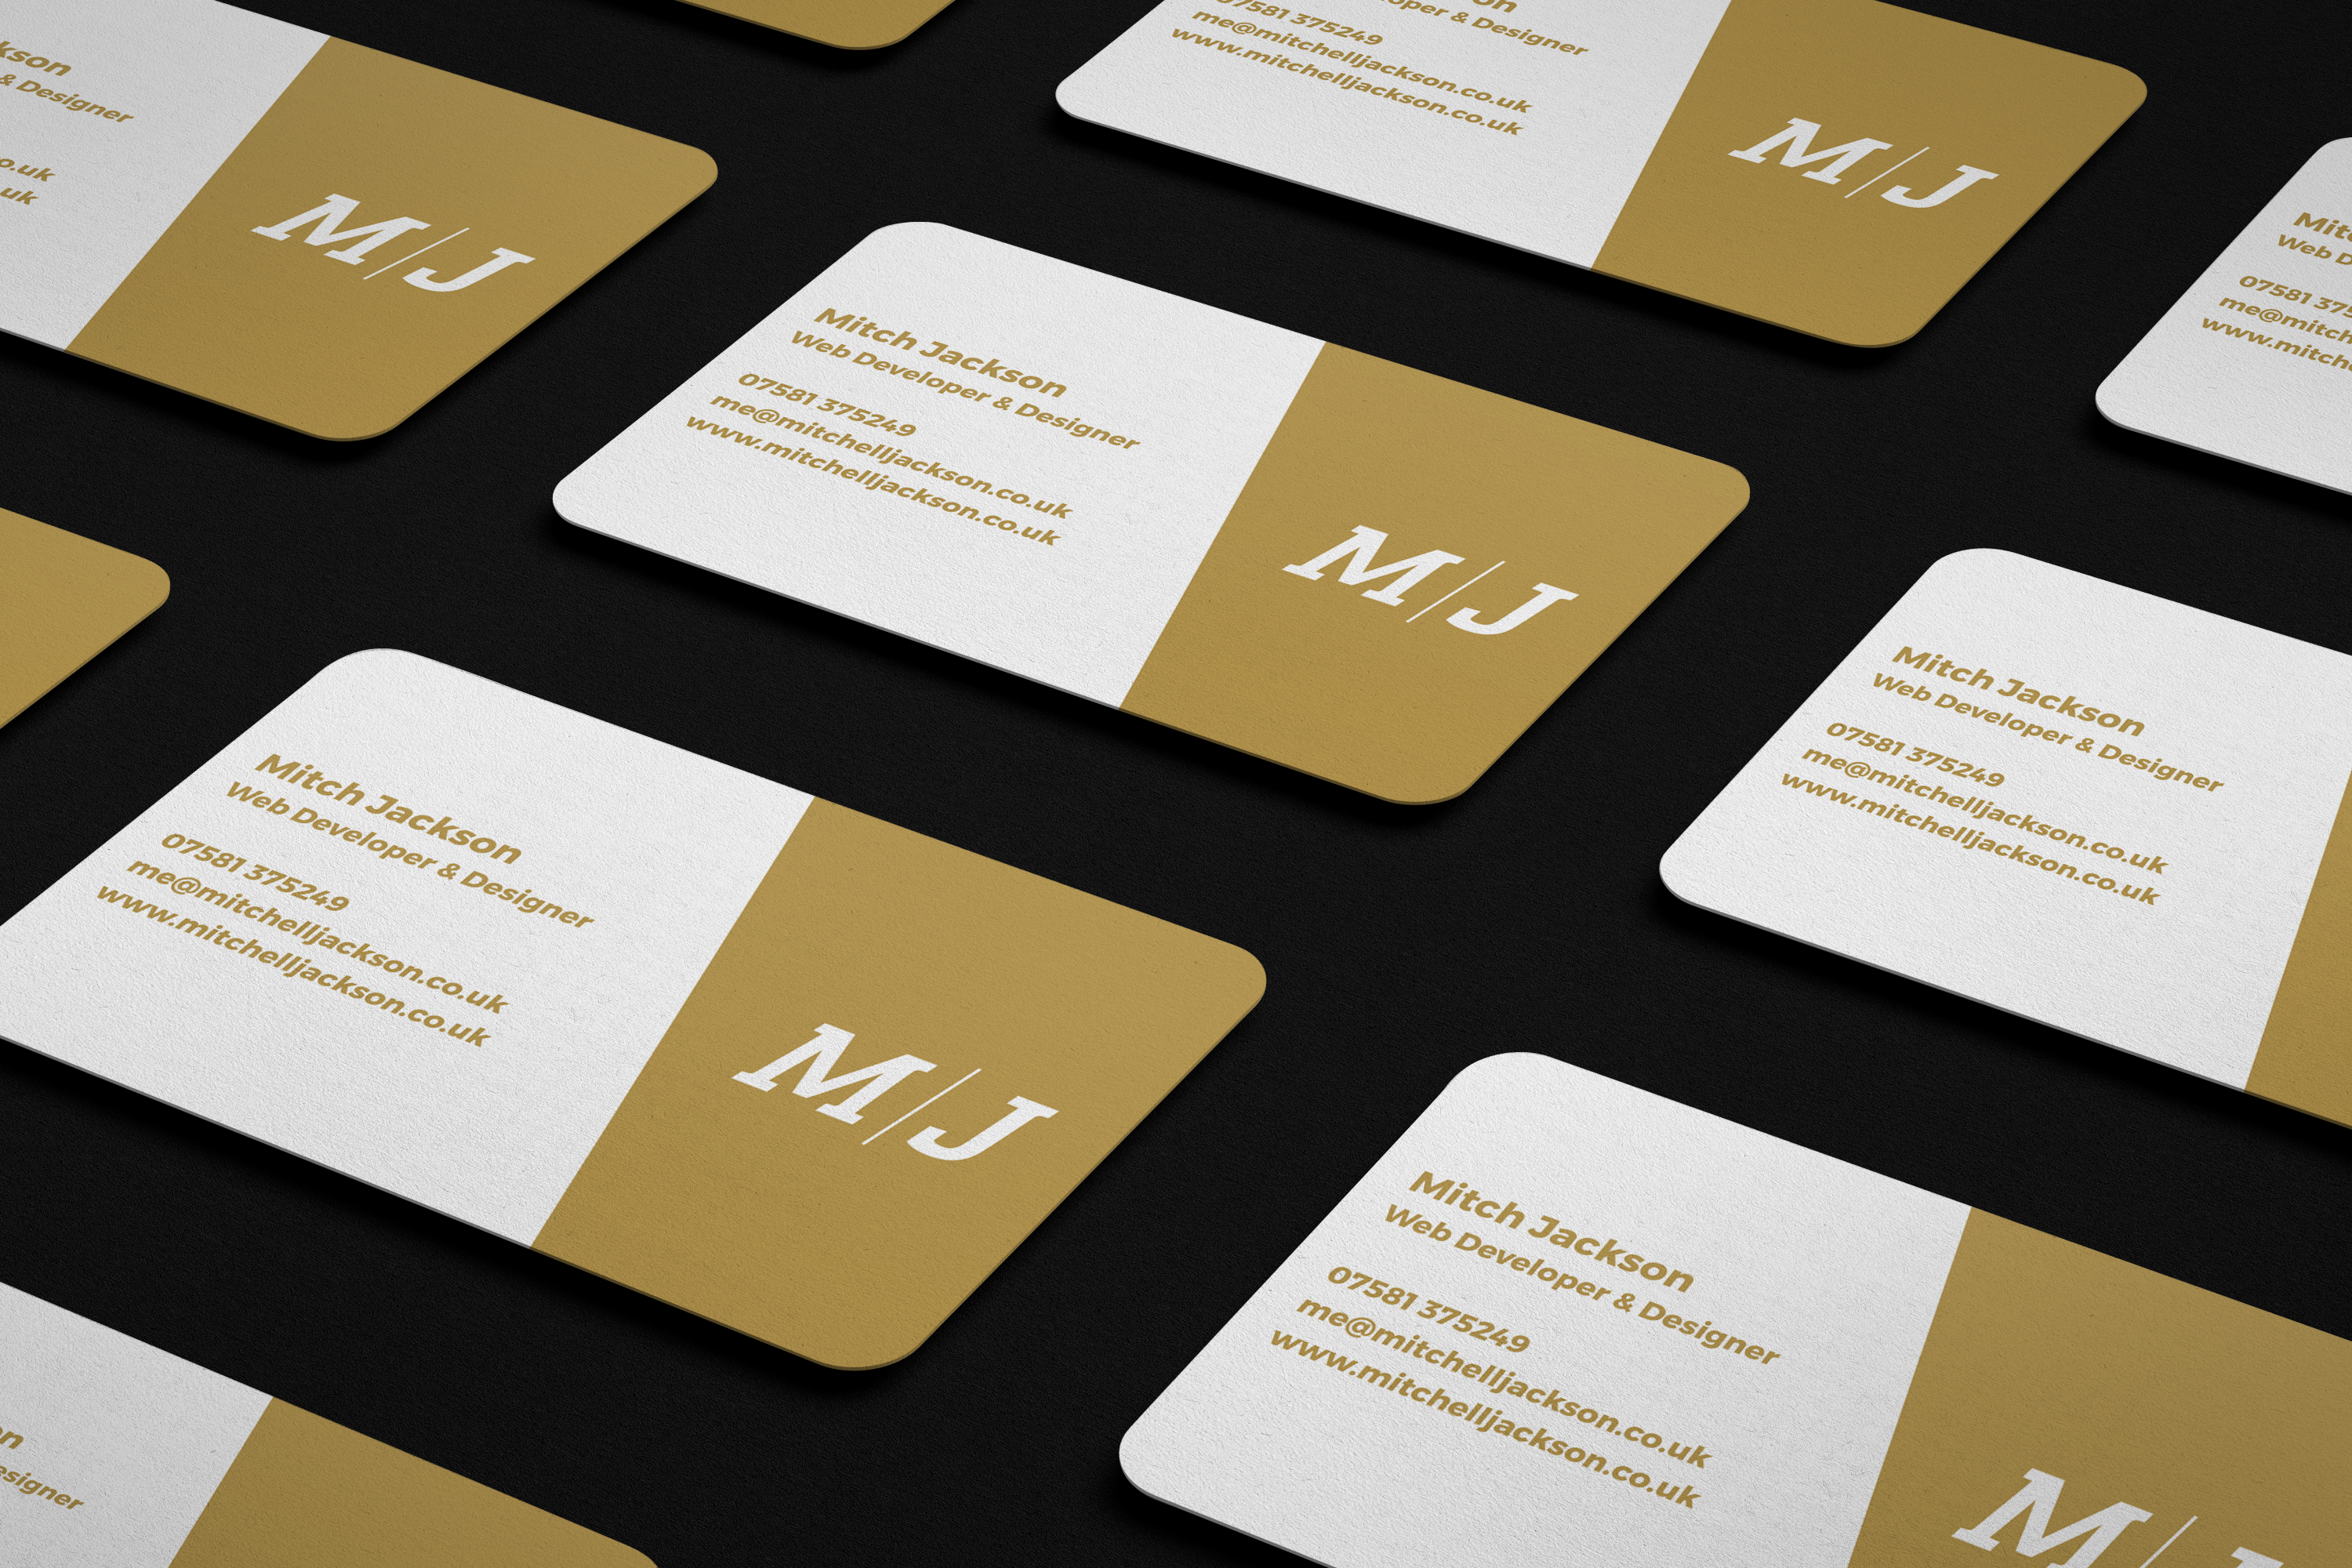 M/J business cards in rows on desk